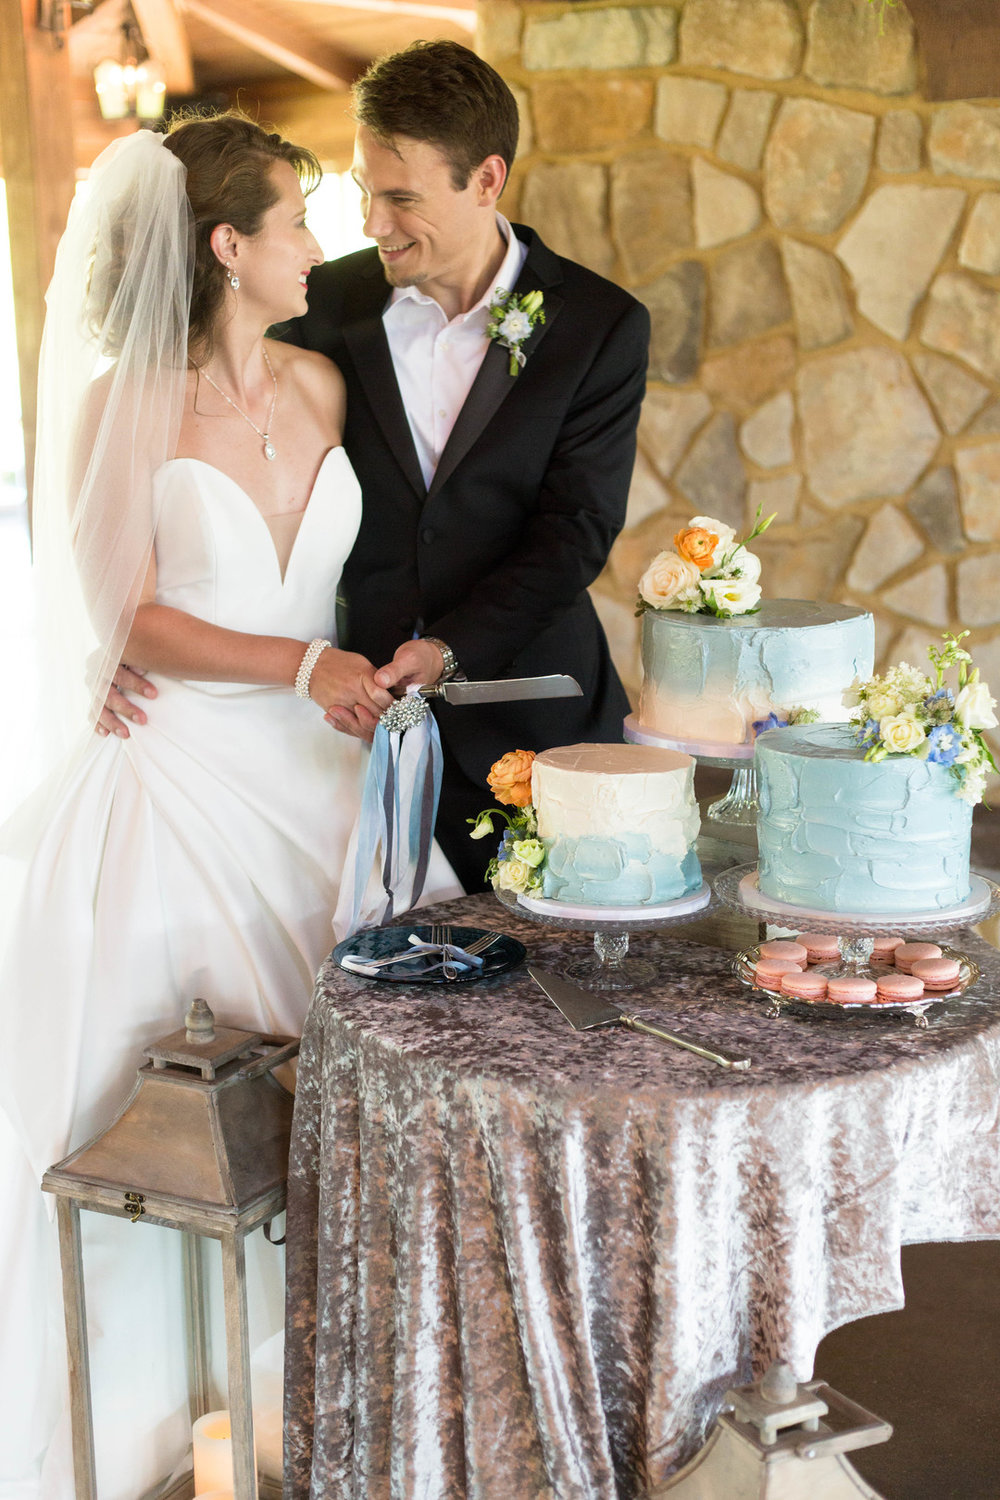 Baby Blue Marble One tier Cake Chicago Wedding Hors d'oeuvres Chicago Wedding Reception Meghan McCarthy Photography